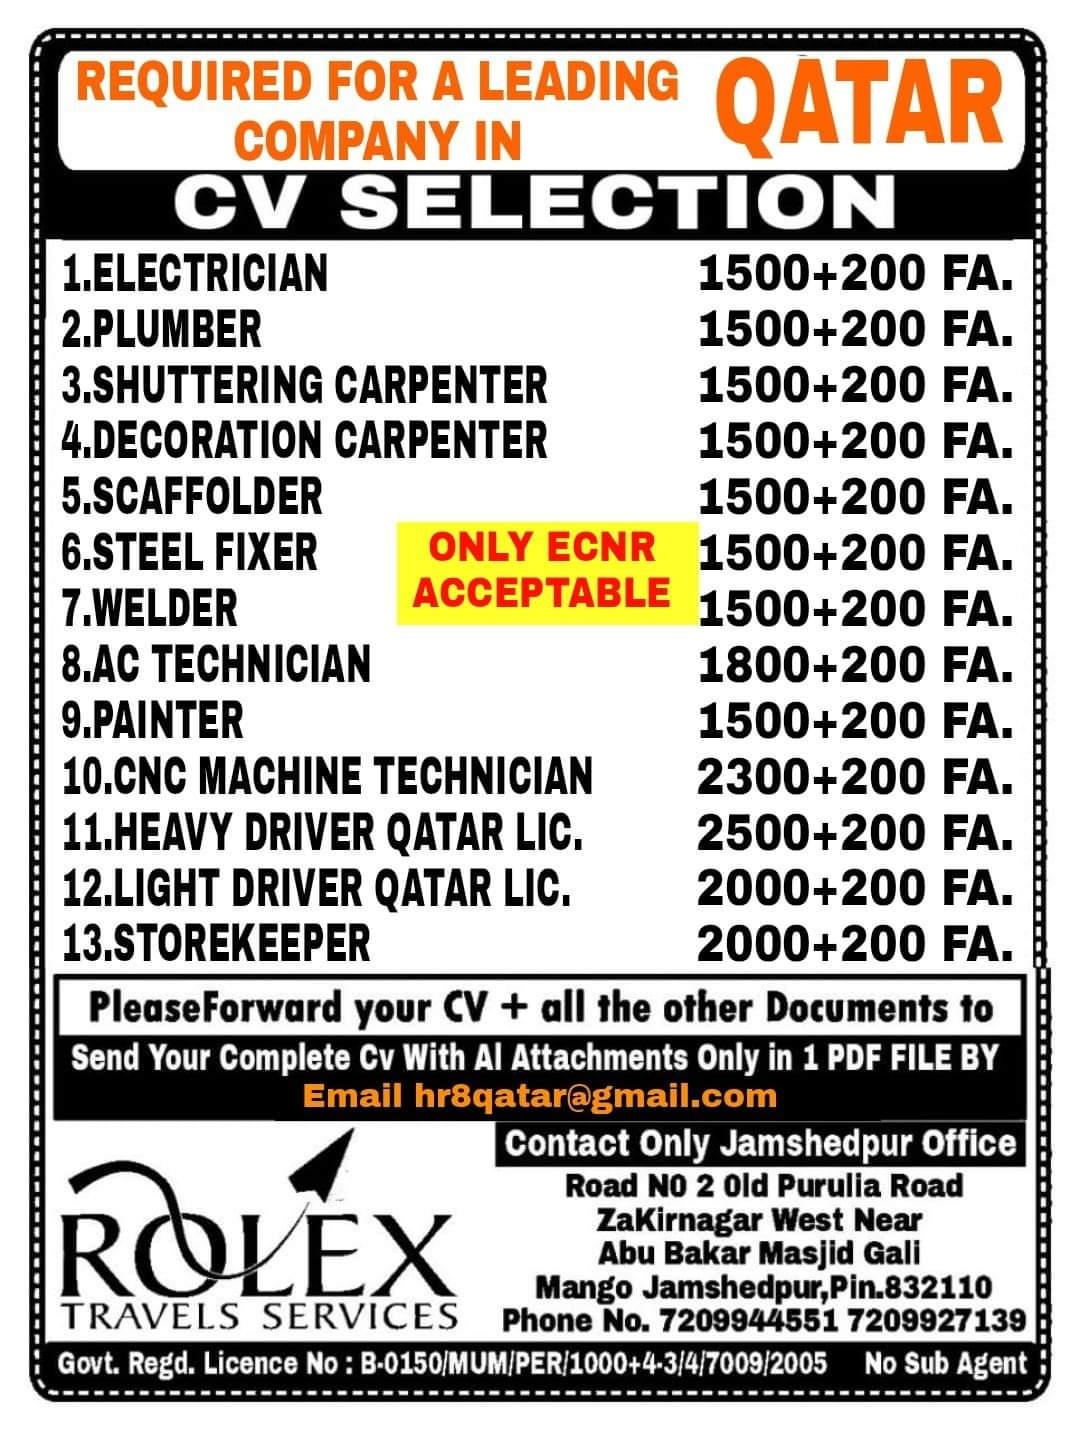 REQUIREMENT FOR A LEADING COMPANY IN QATAR